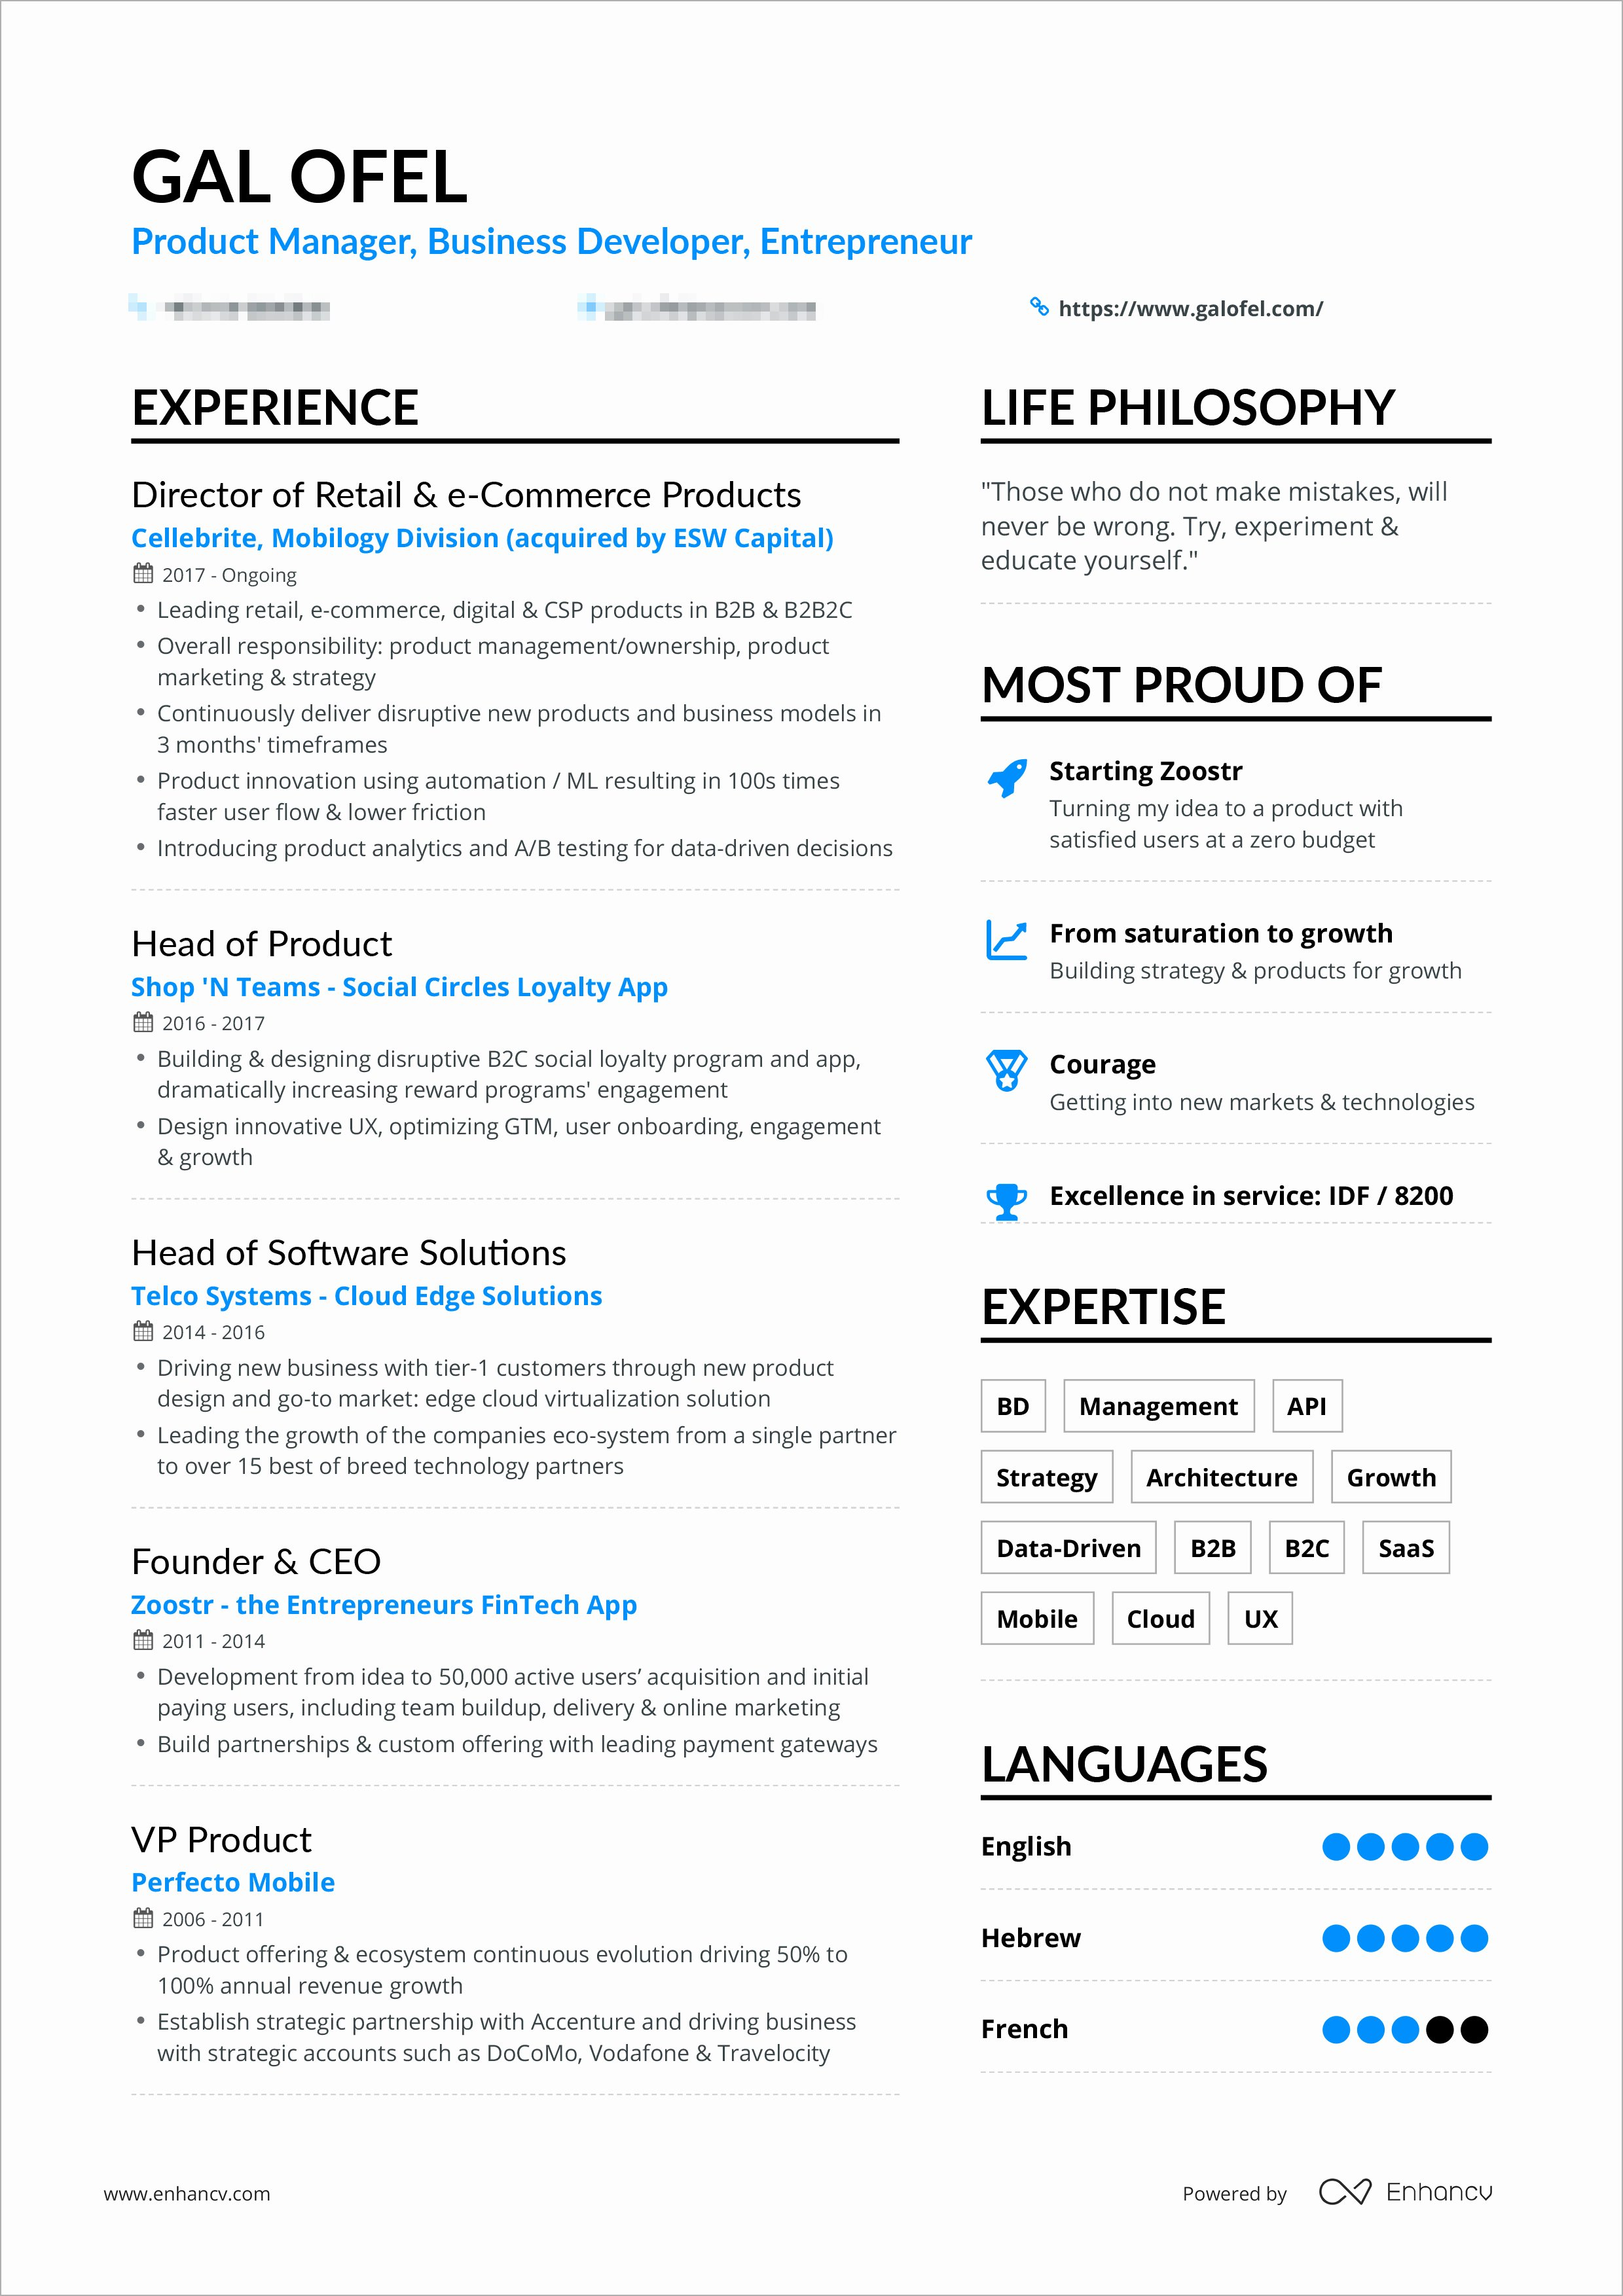 A Powerful One Page Resume Example You Can Use